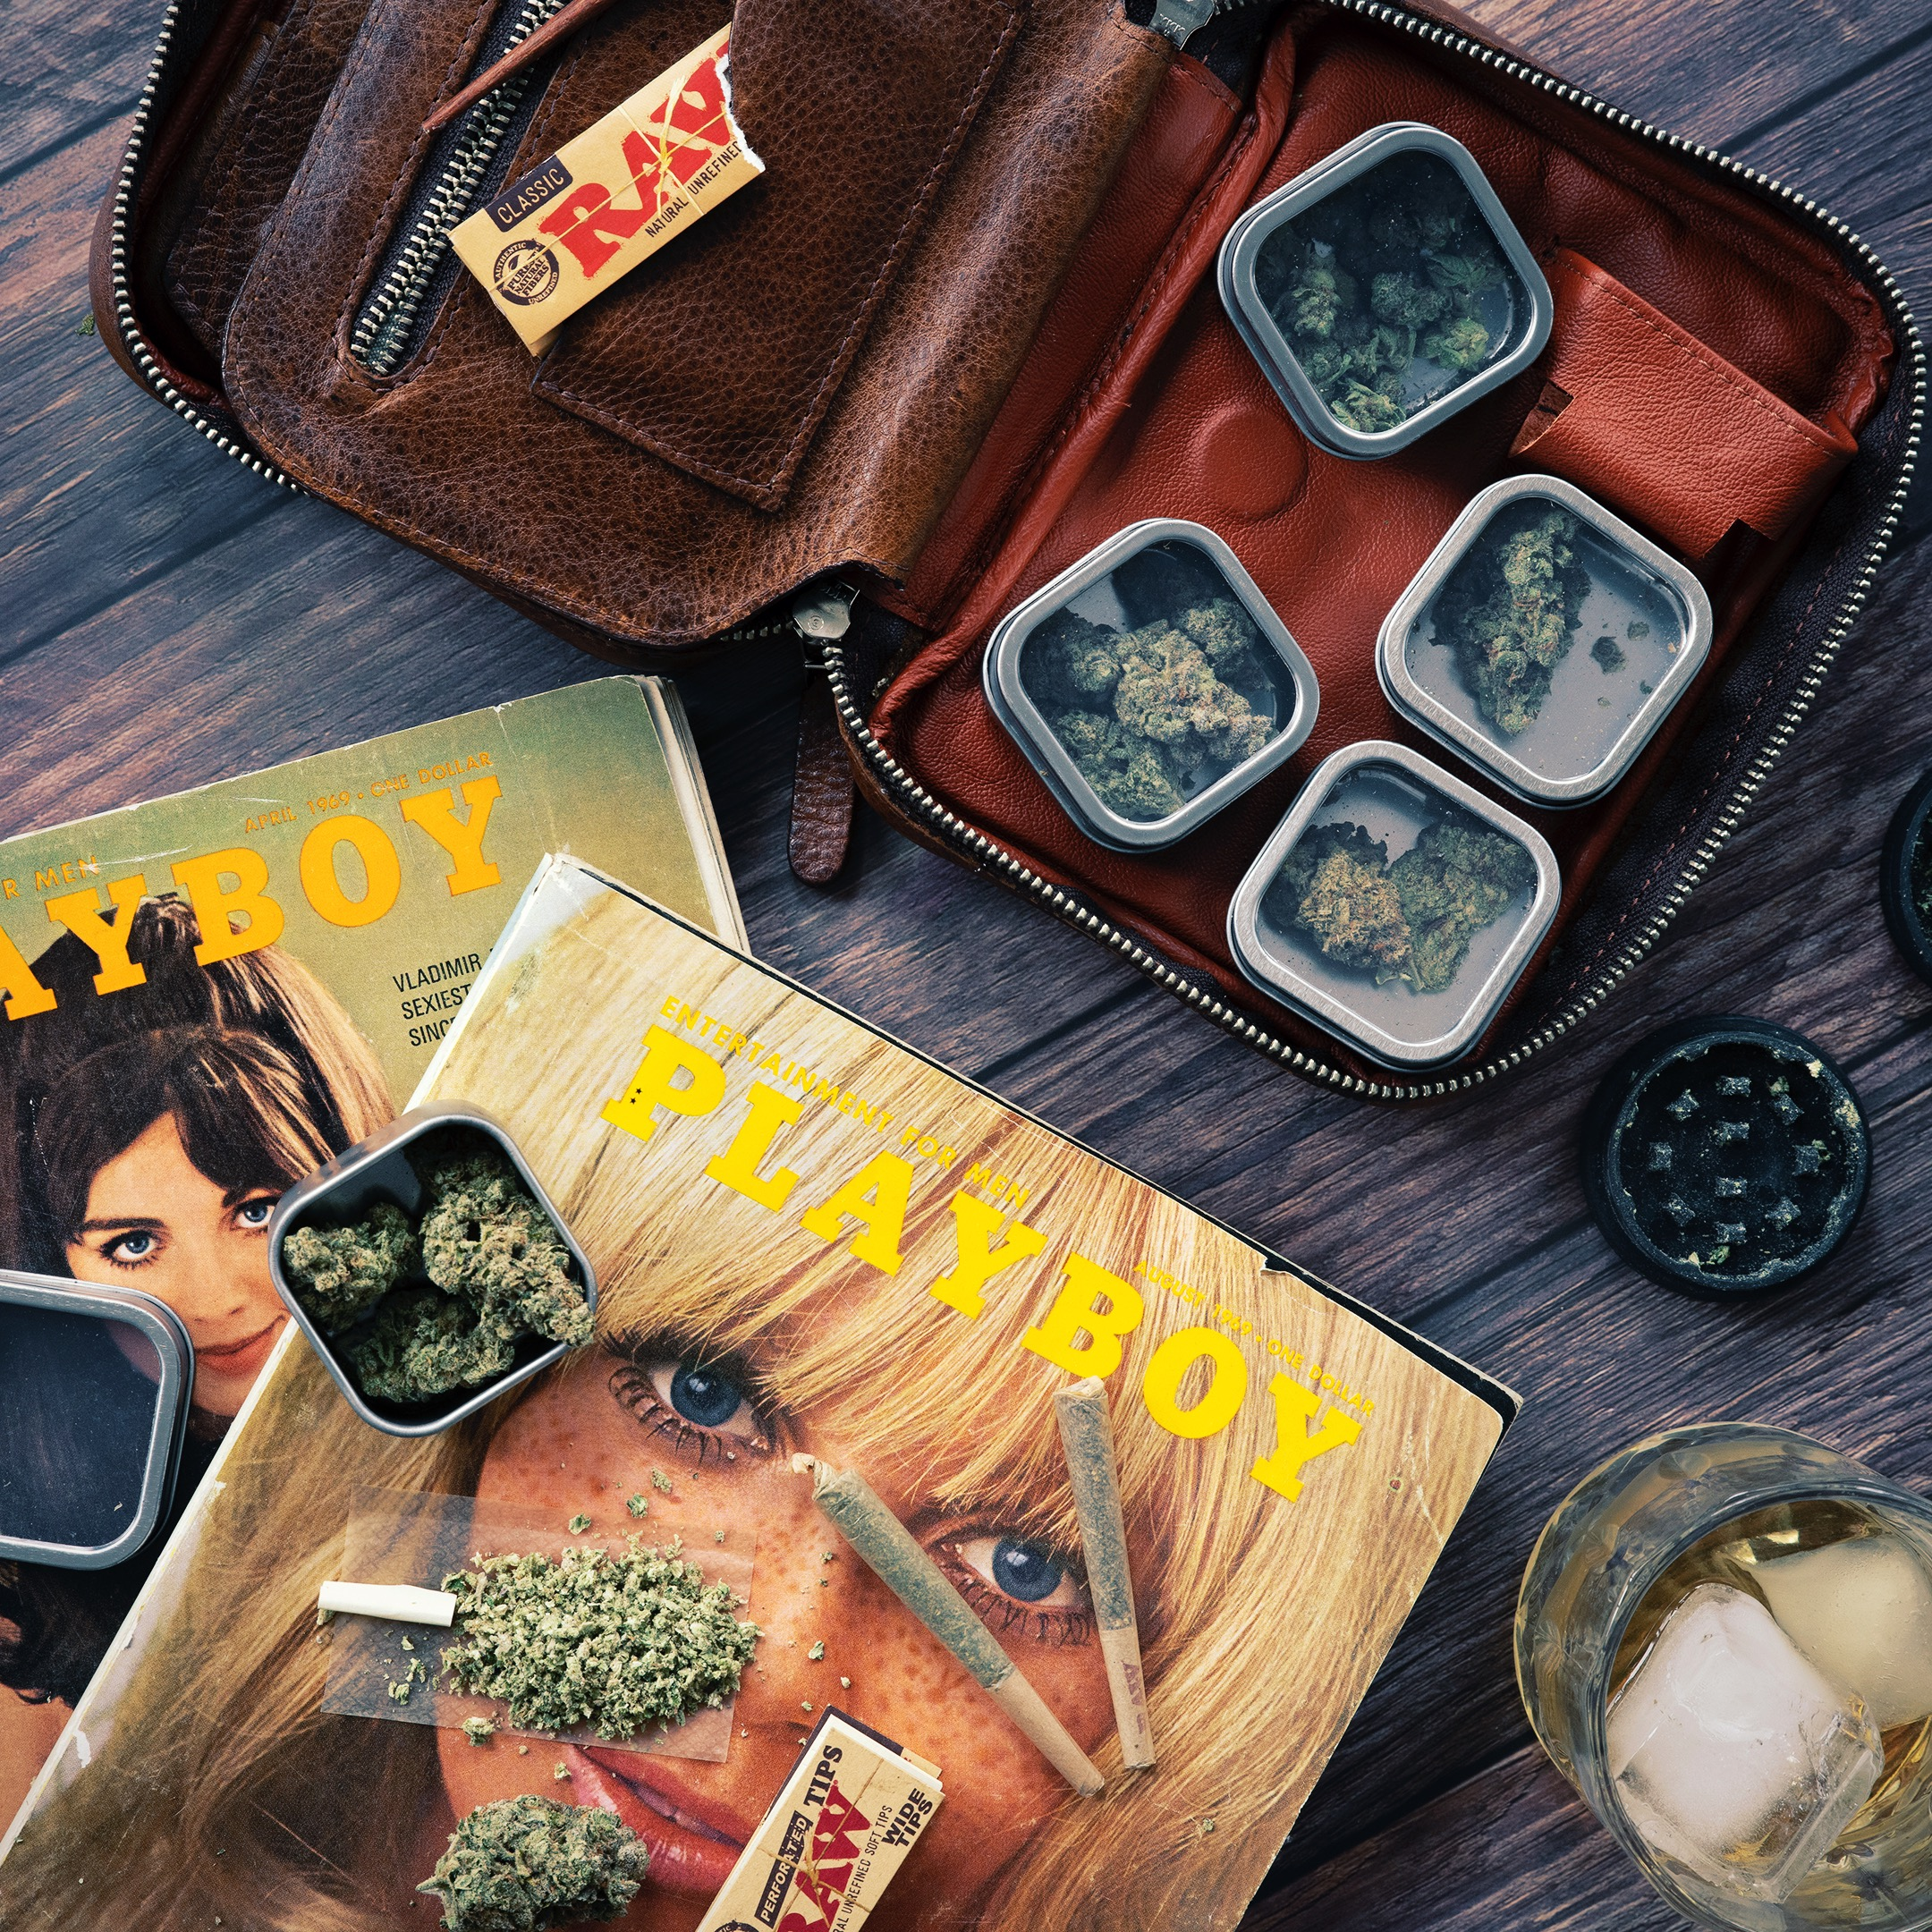 leather traveling case with cannabis next to vintage playboy magazines